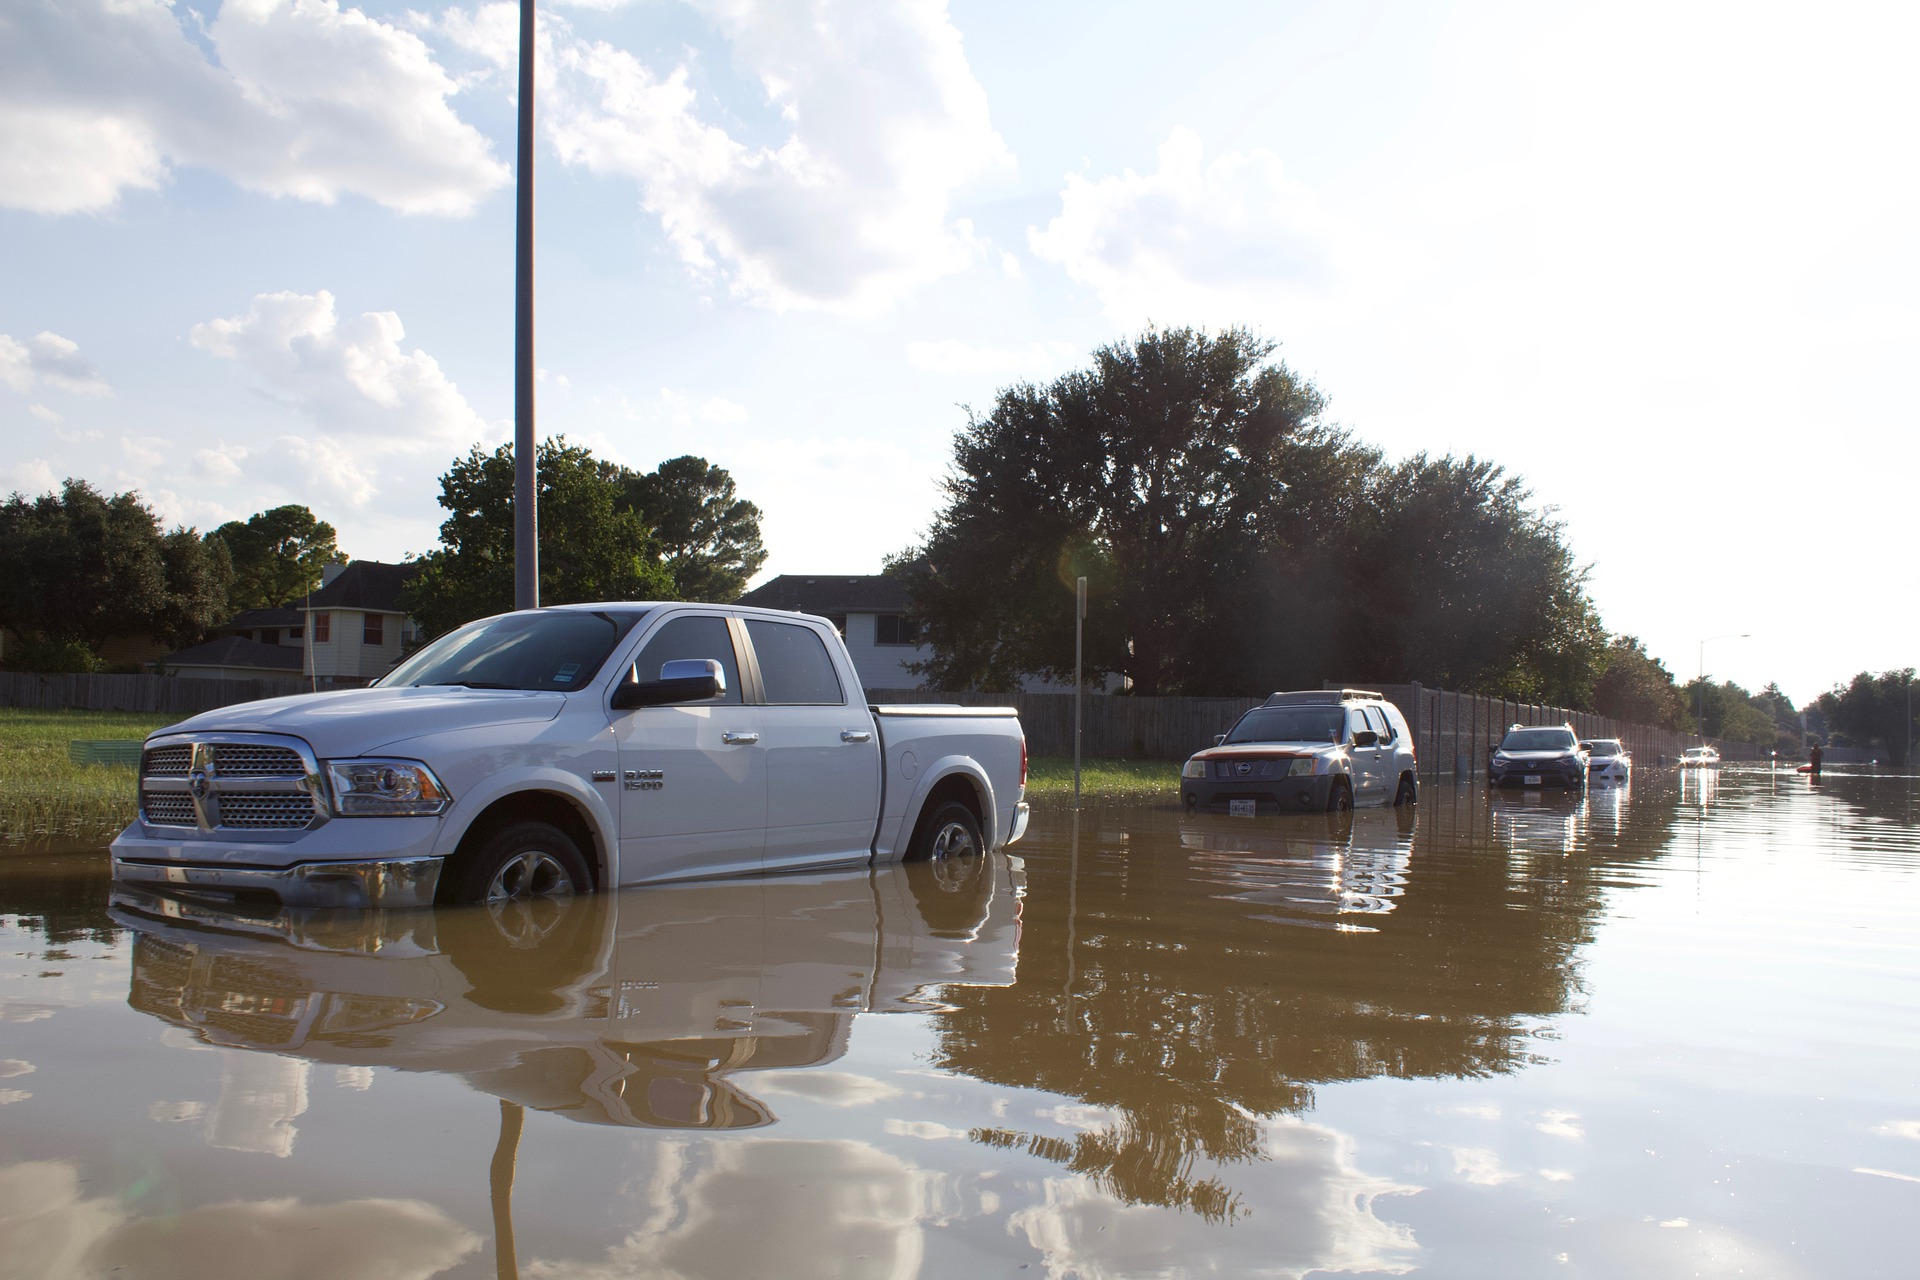 Stay safe on flooded roads and avoid auto insurance claims - see Ewing, Hines & Associates, Kensington, MD